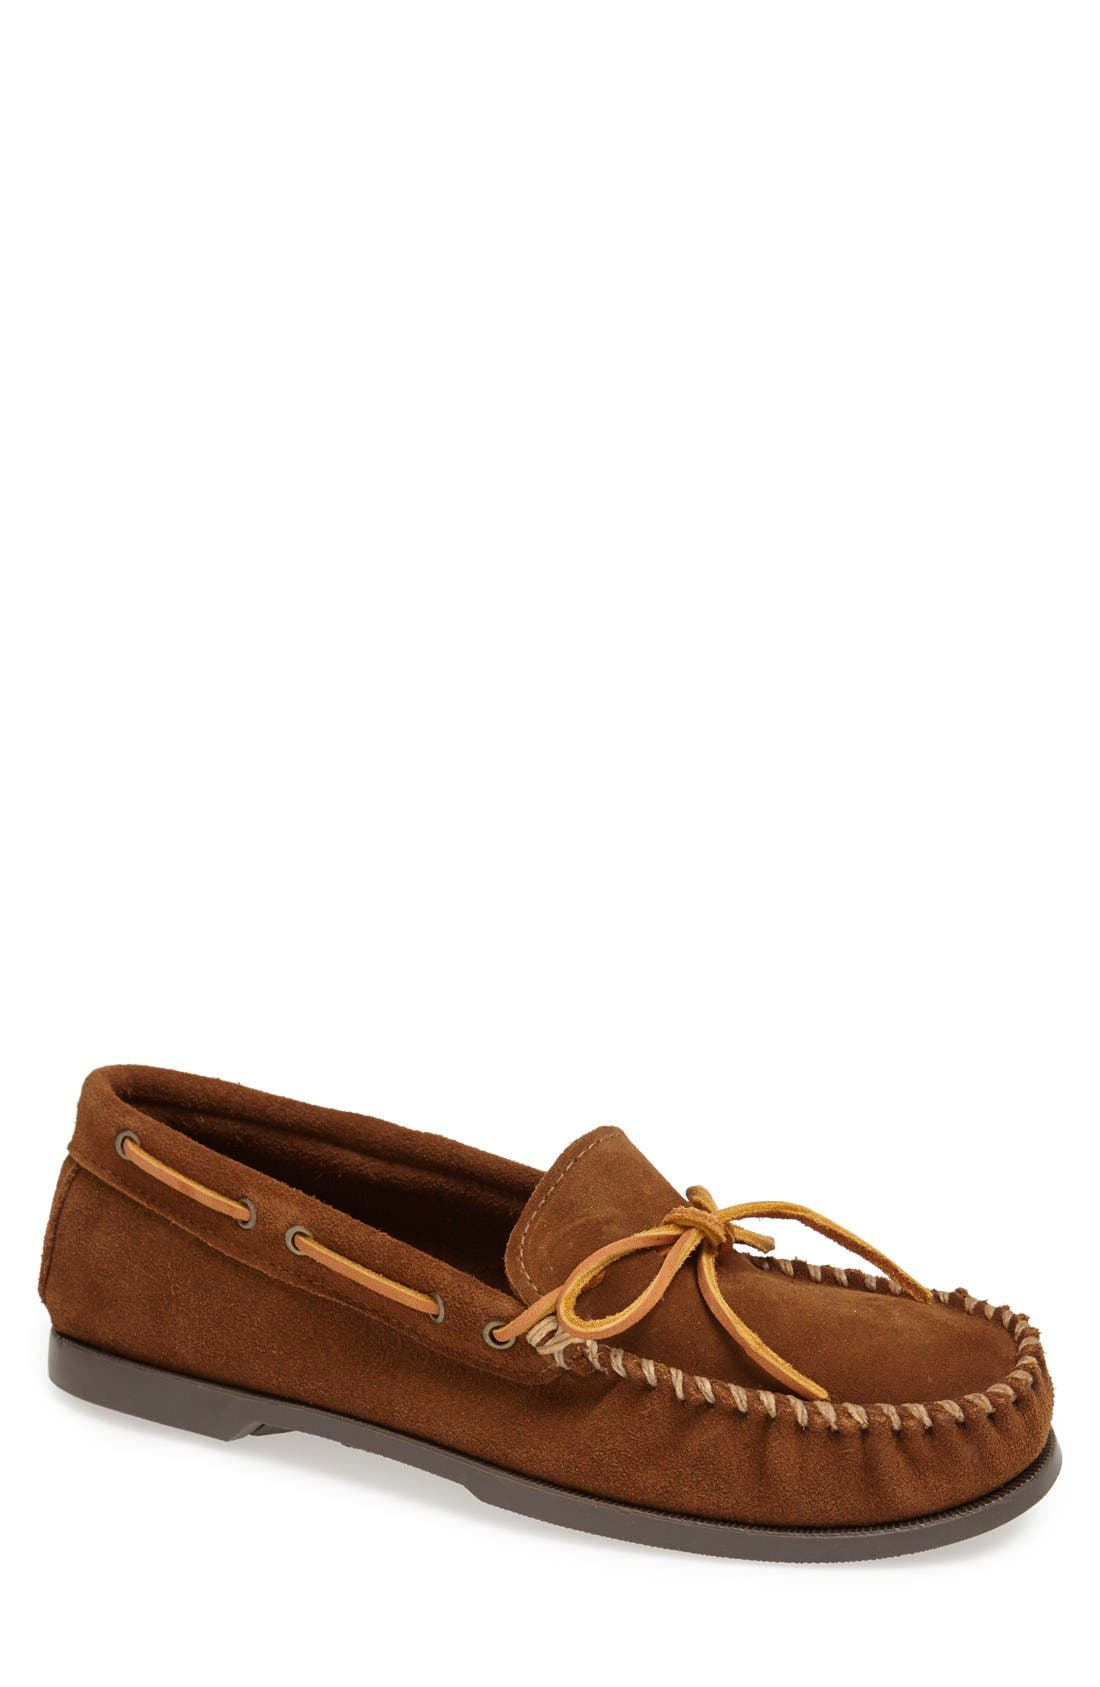 Leather Camp Moccasin,                             Main thumbnail 1, color,                             DUSTY BROWN